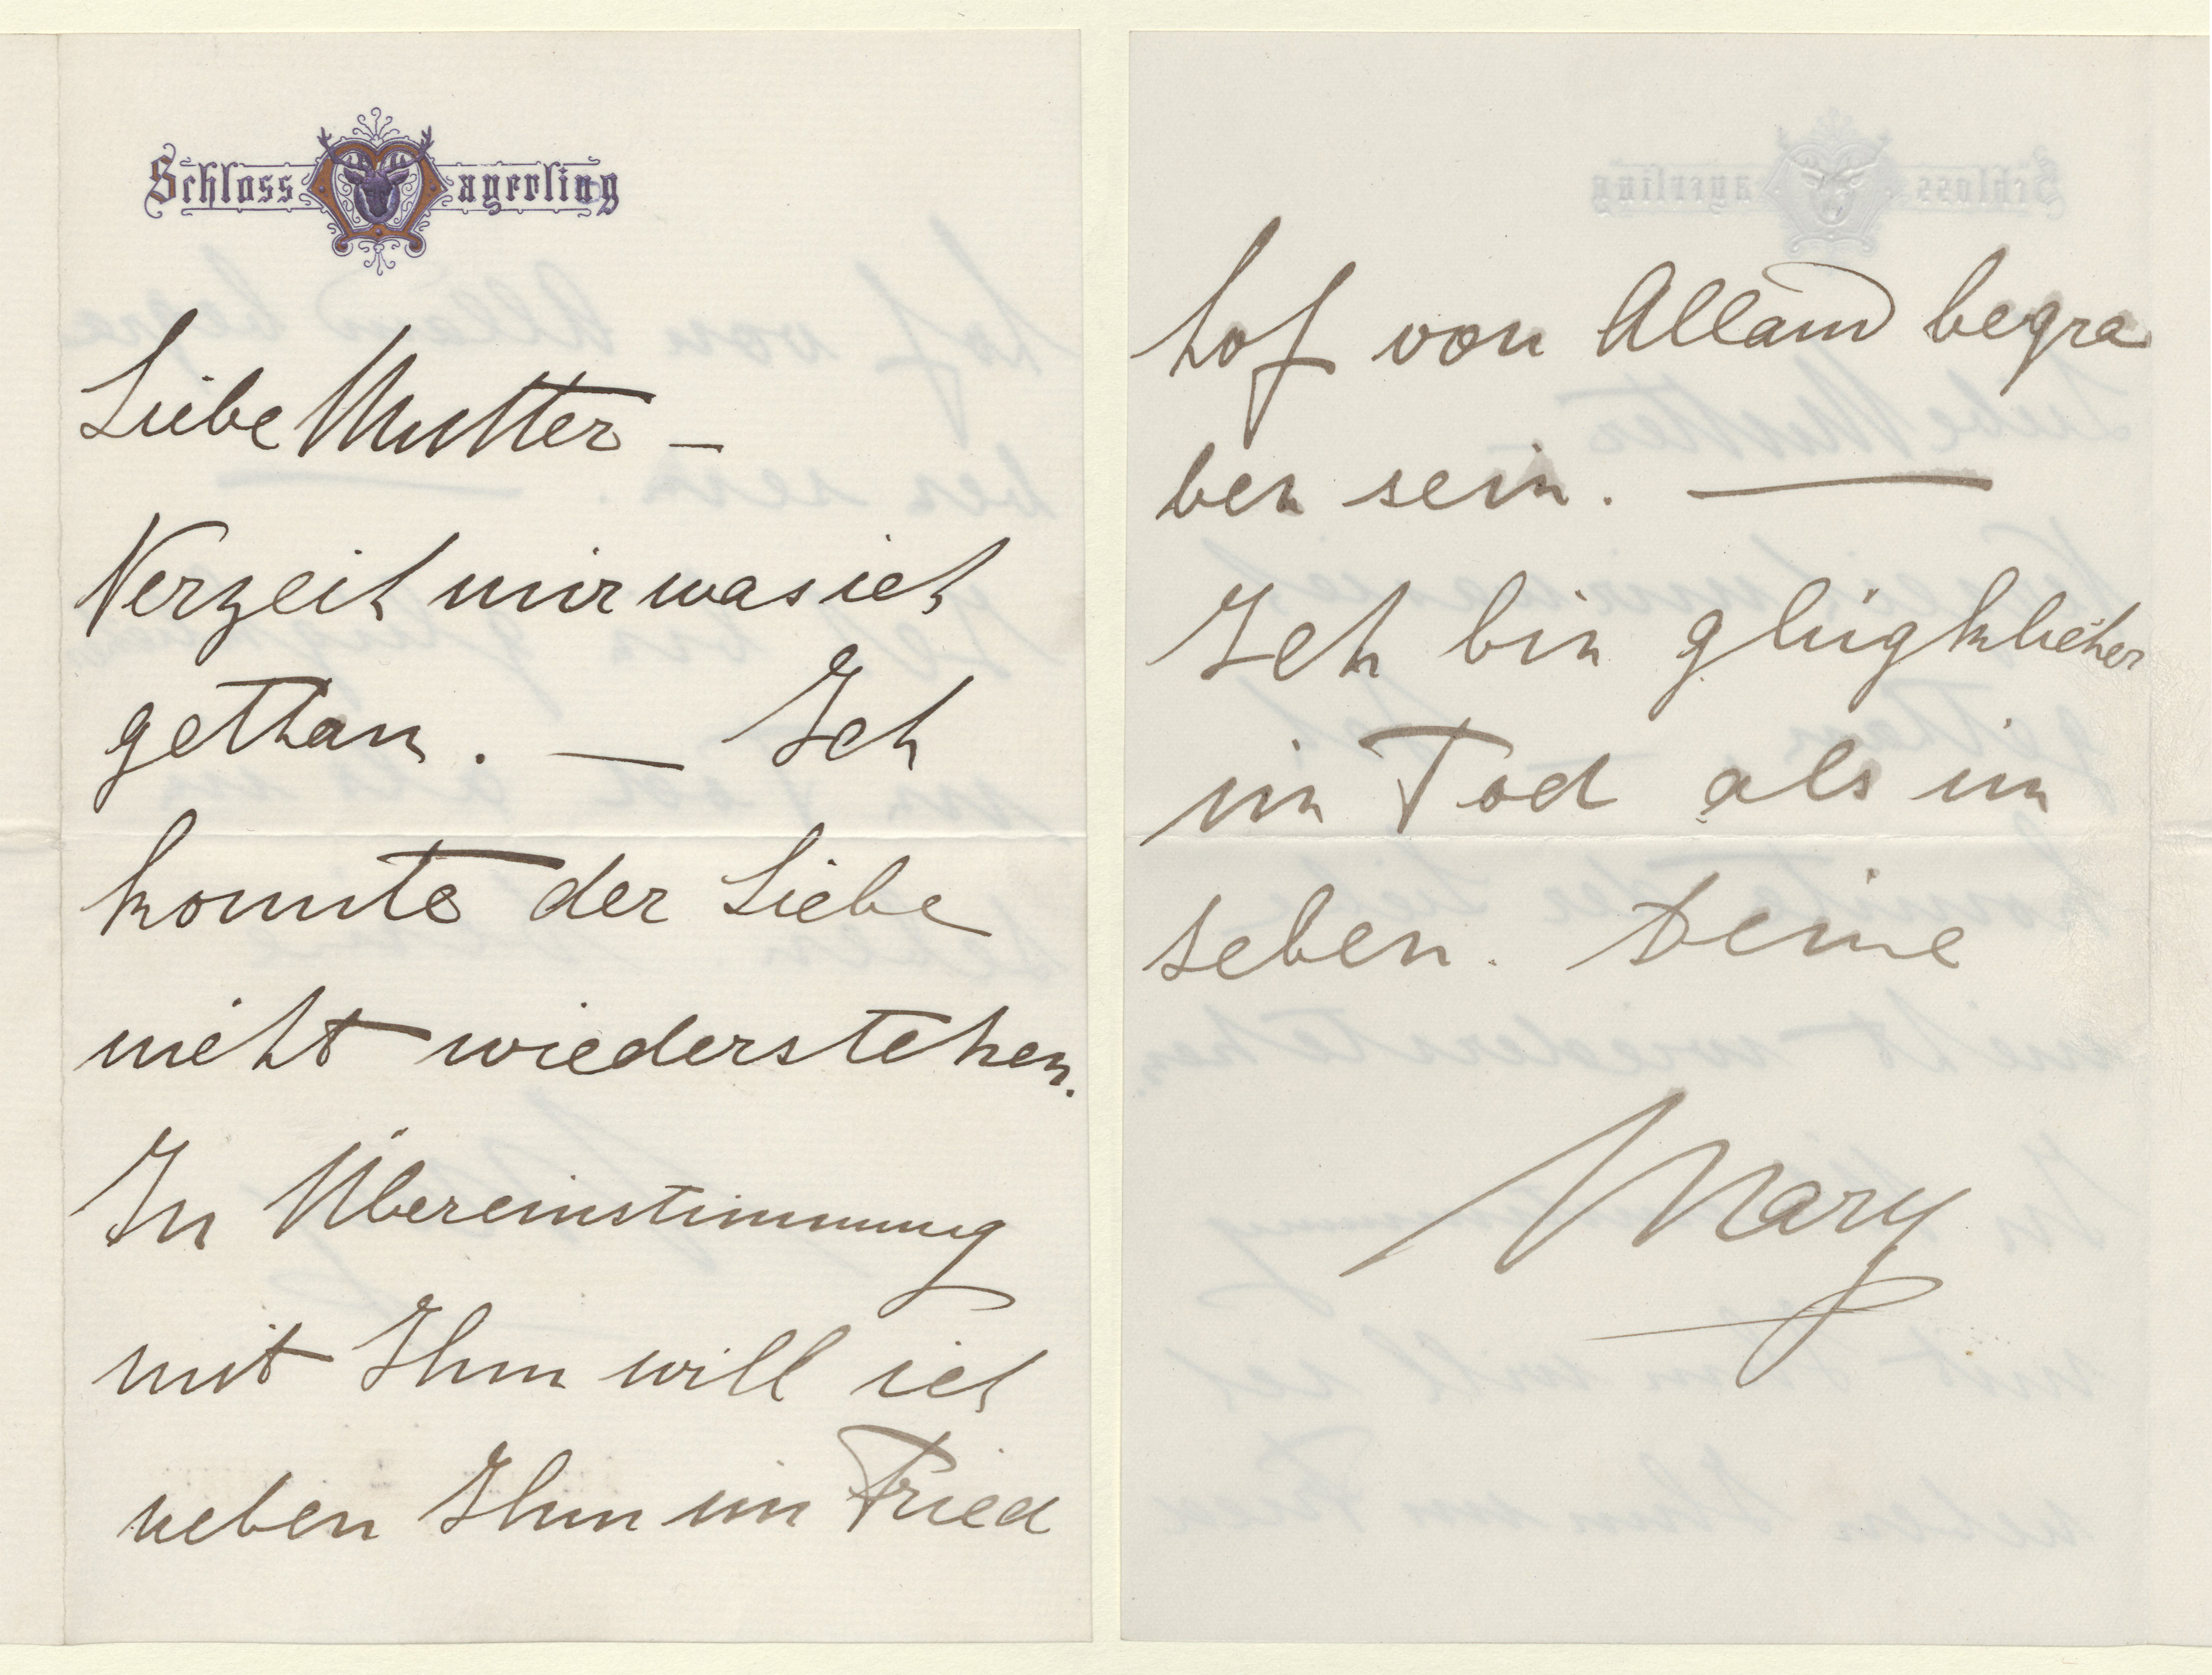 Mayerling incident wikipedia vetseras letter of farewell to her mother thecheapjerseys Images